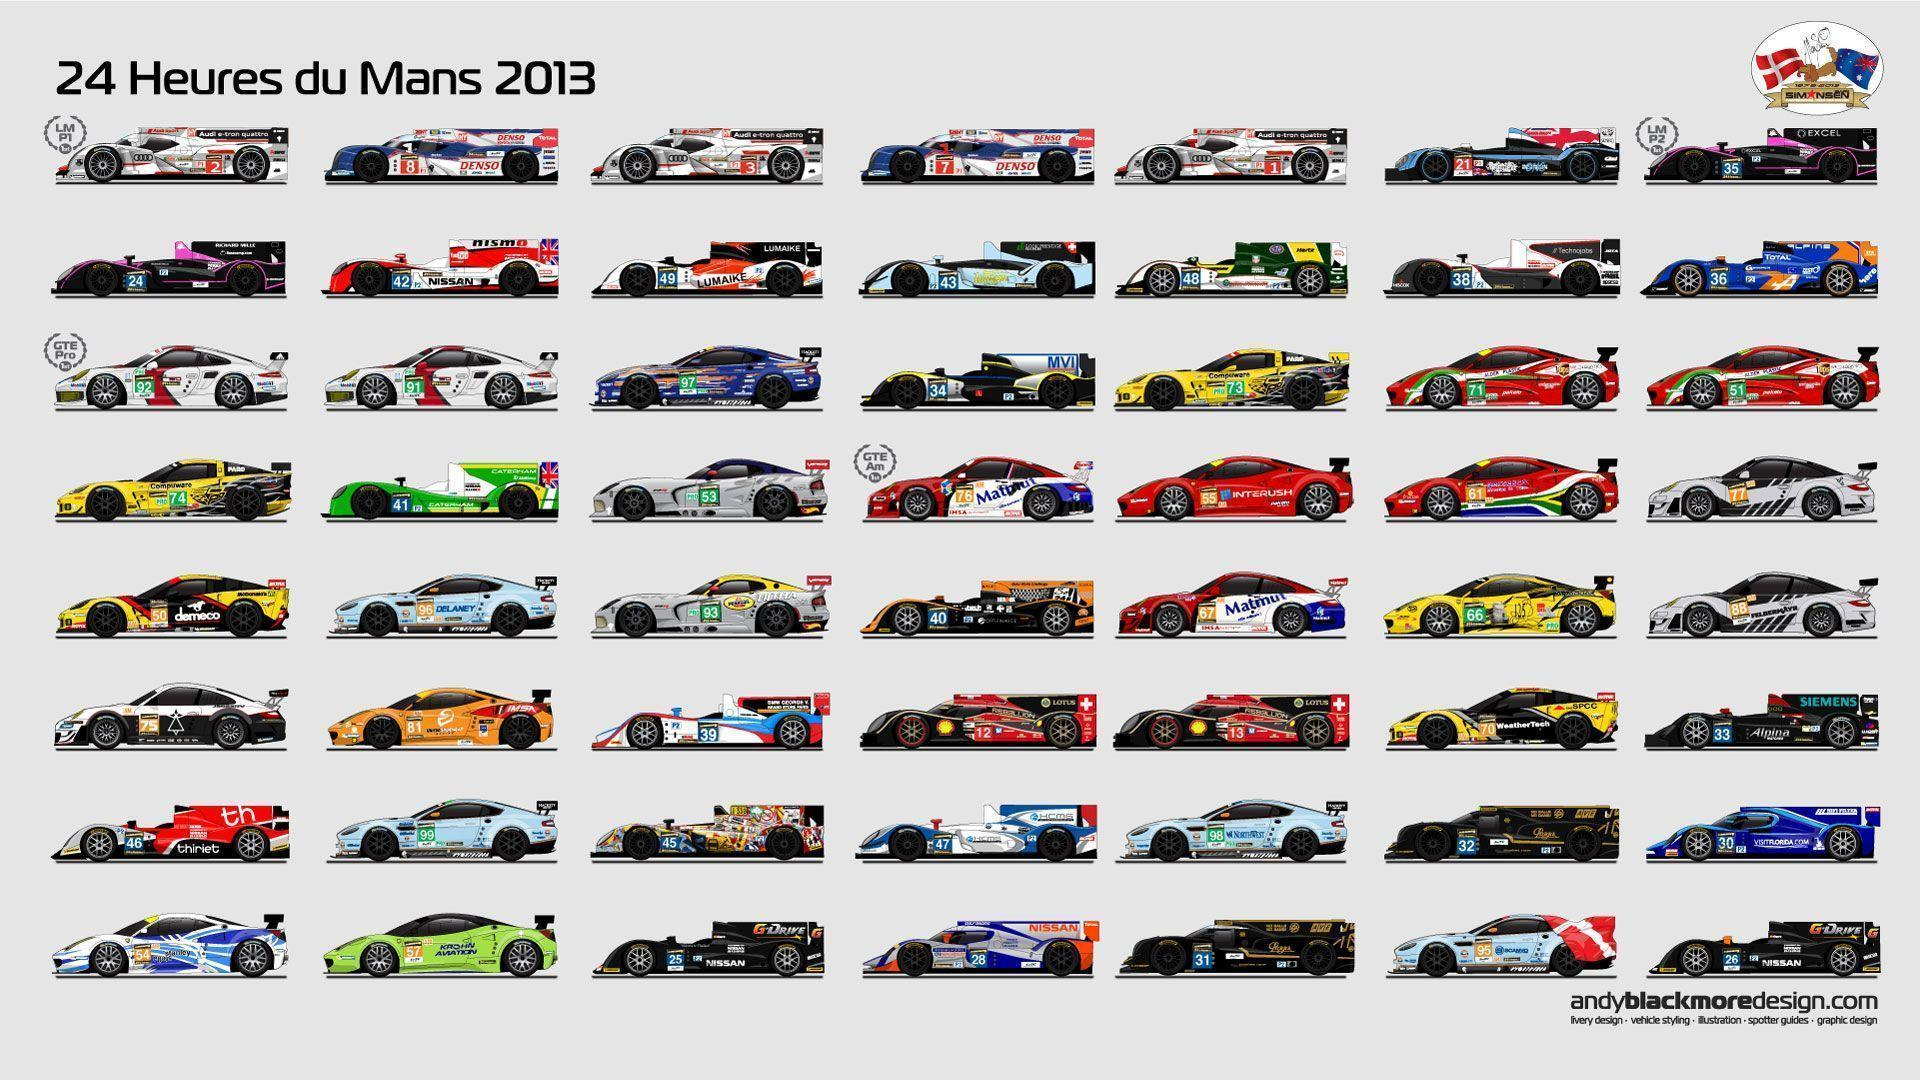 WALLPAPER COLLECTION | Spotter Guides